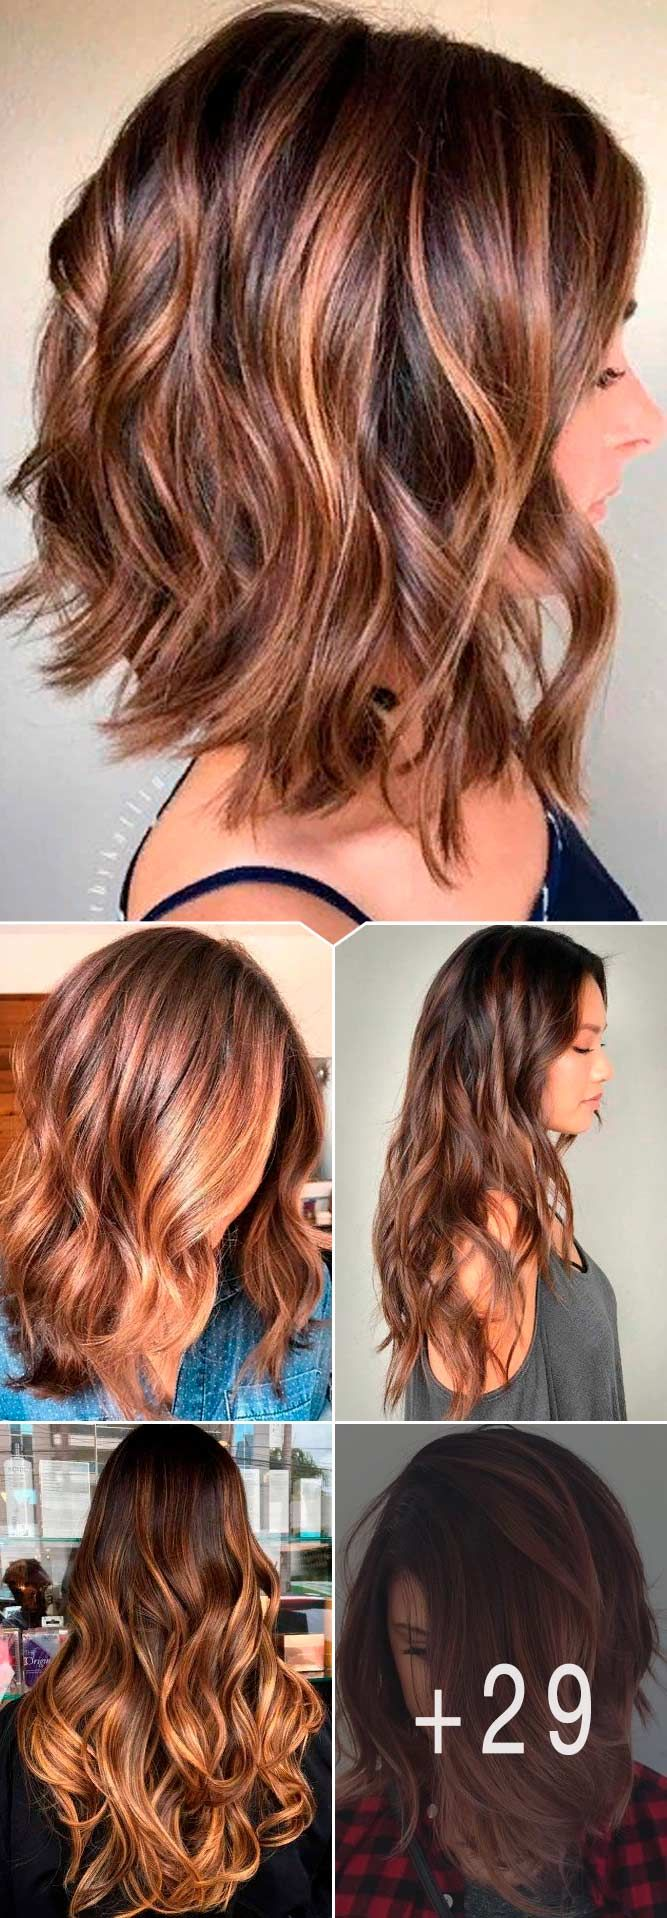 Charming And Chic Options For Brown Hair With Highlights ★ Light and dark brown hair with highlights and lowlights looks spectacular. Discover trendy color ideas for short and long hairstyles. #glaminati #lifestyle #brownhairwithhighlights